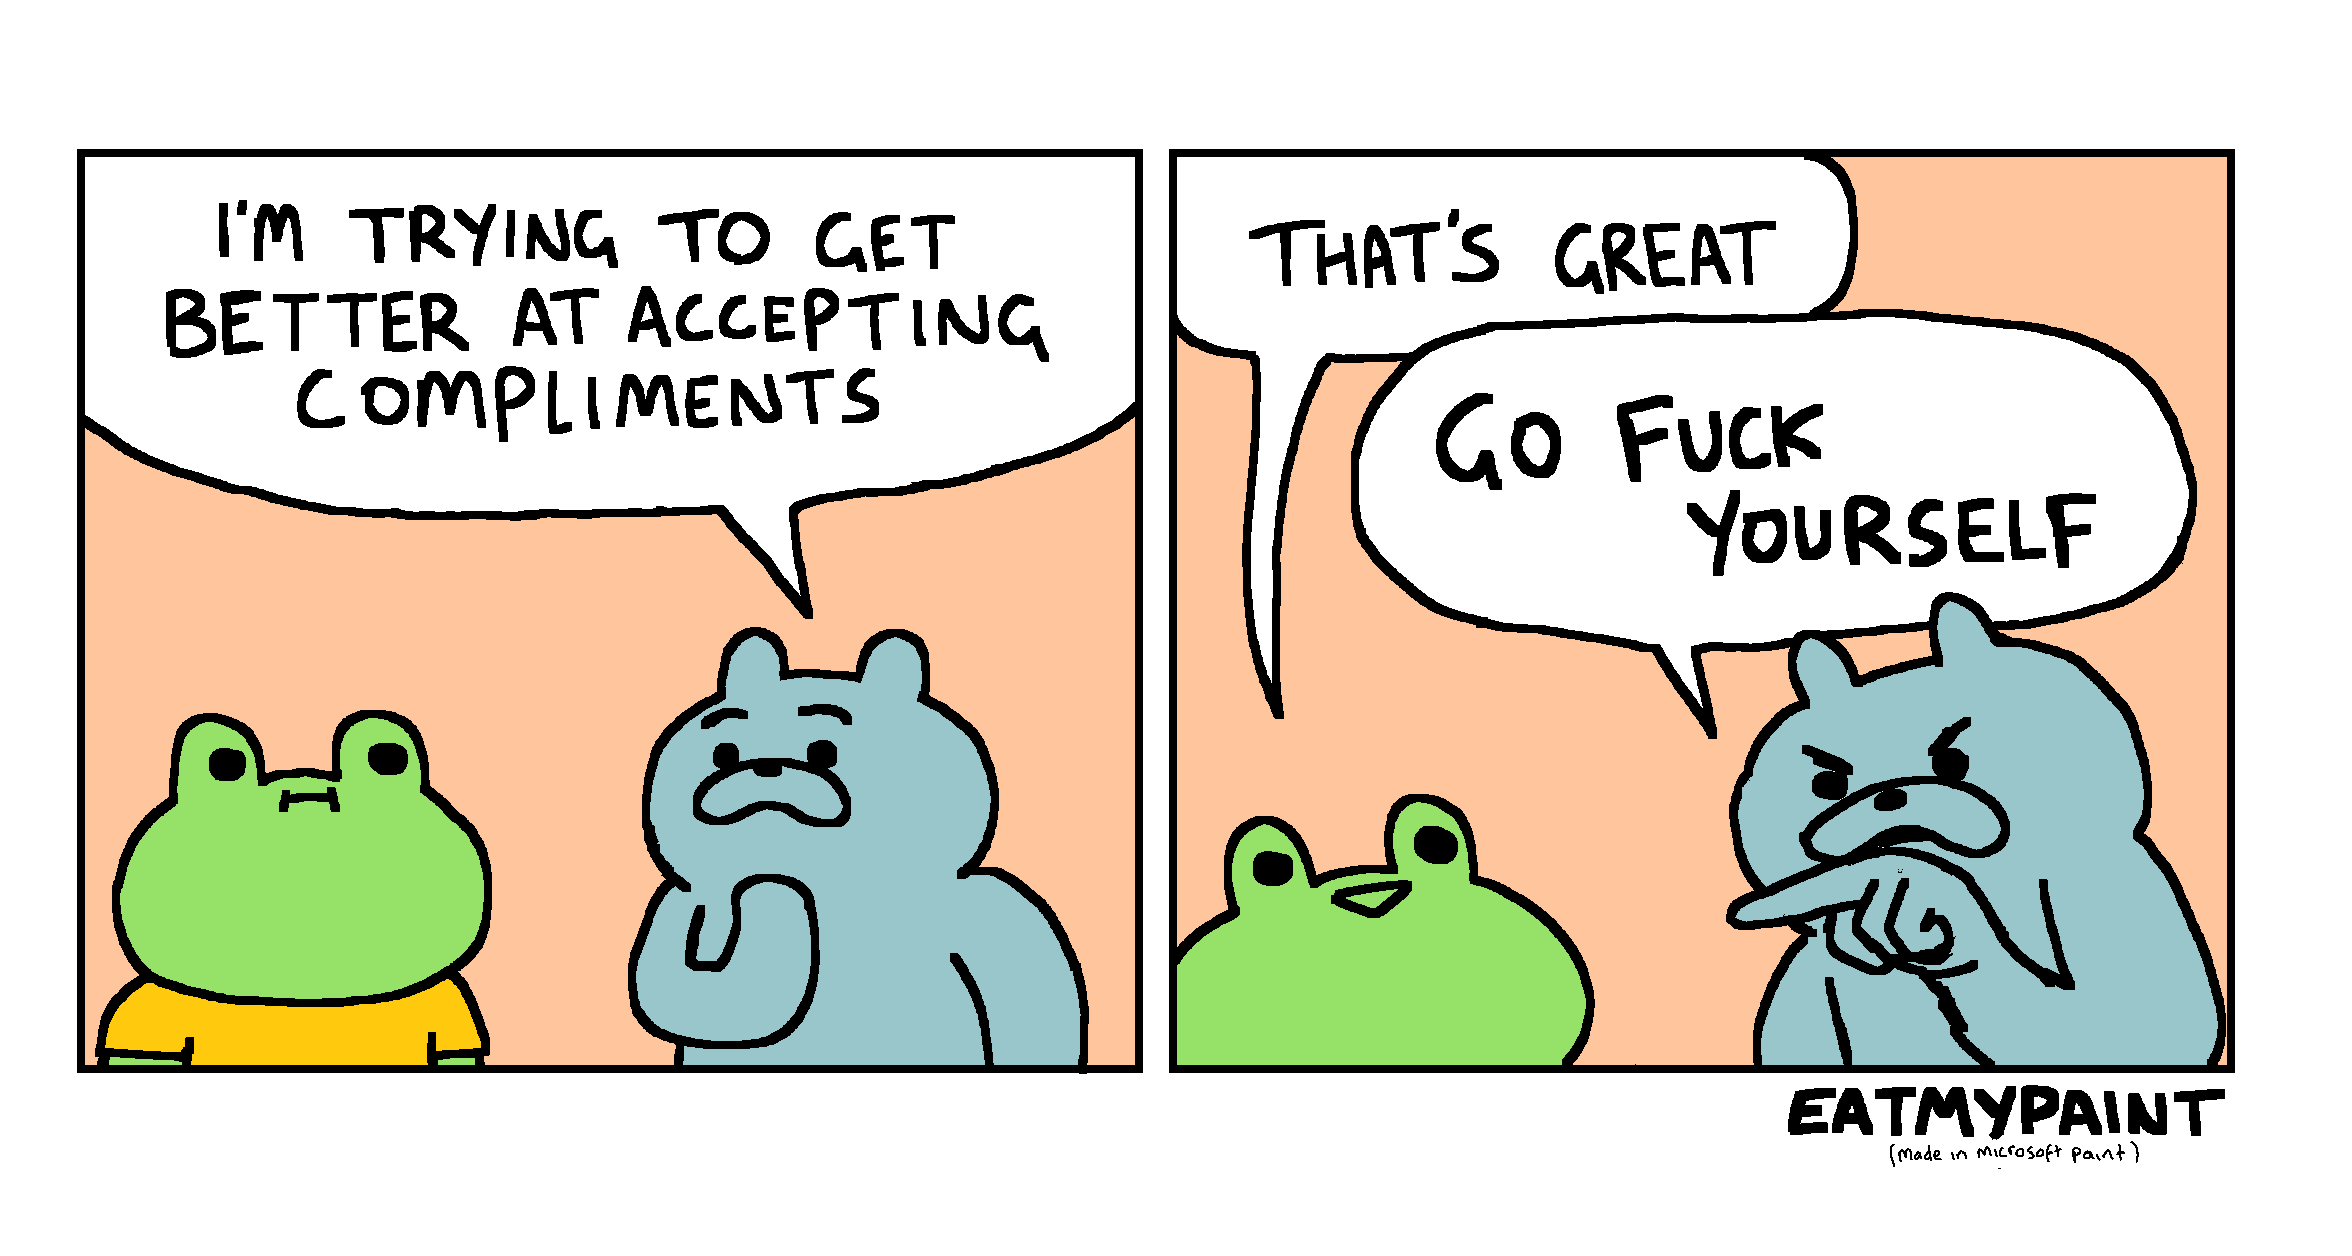 Frog was asking for that one in all fairness